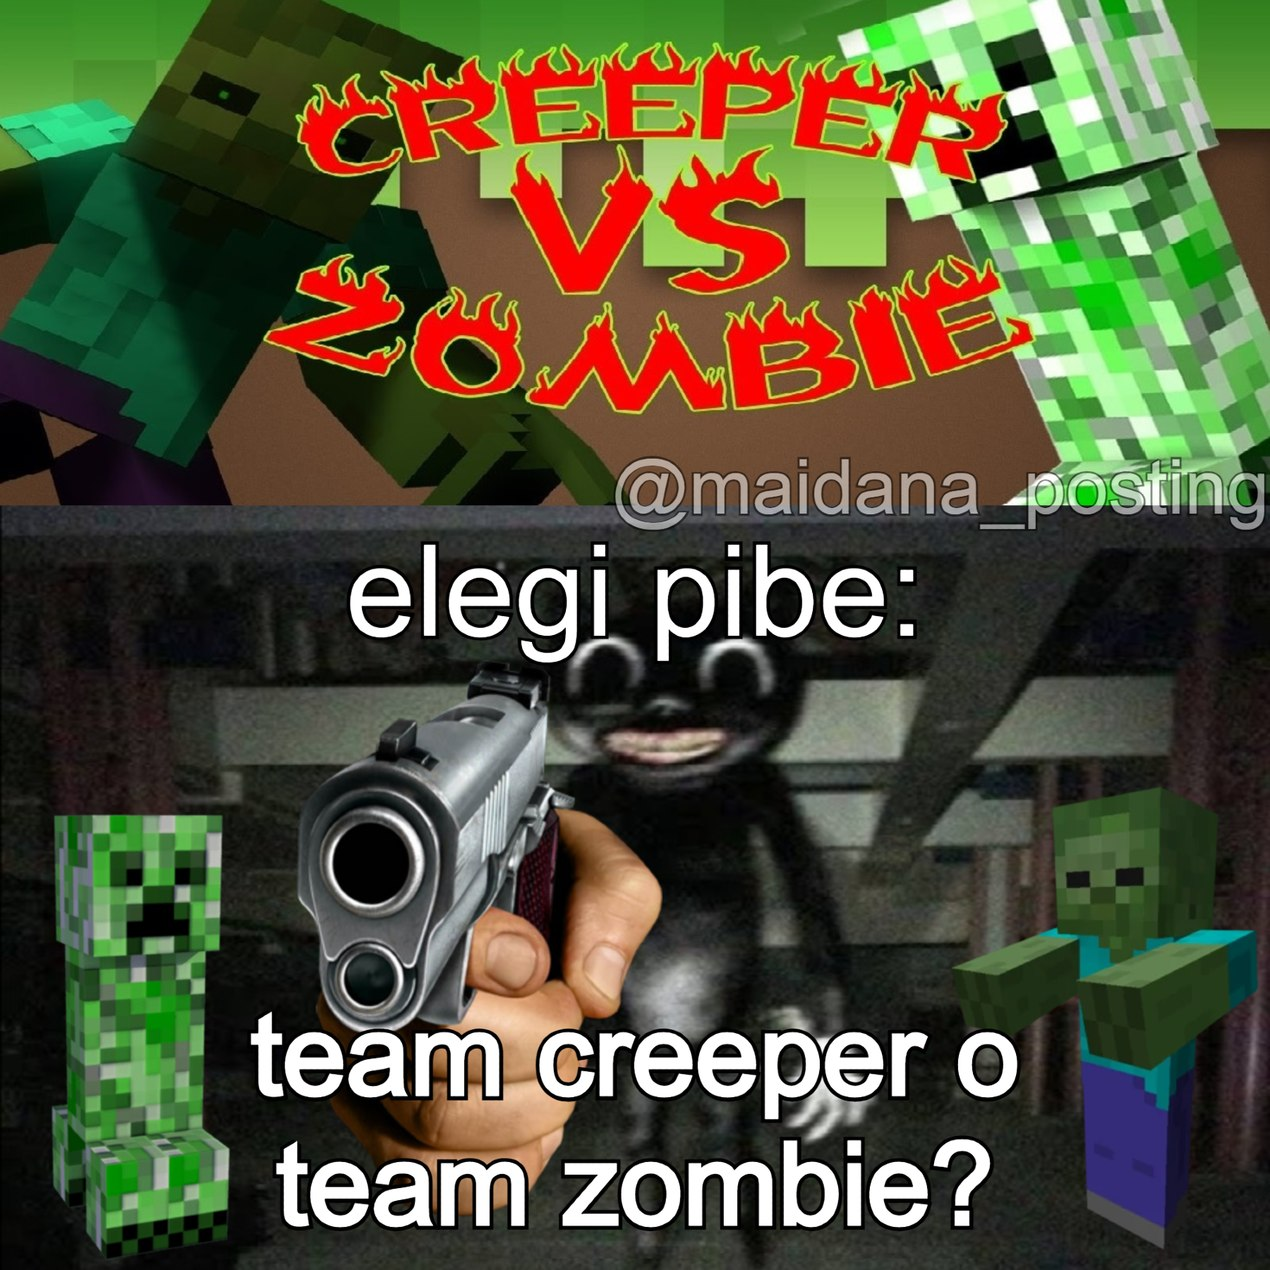 Team creeper o team zombie? >:((( - meme